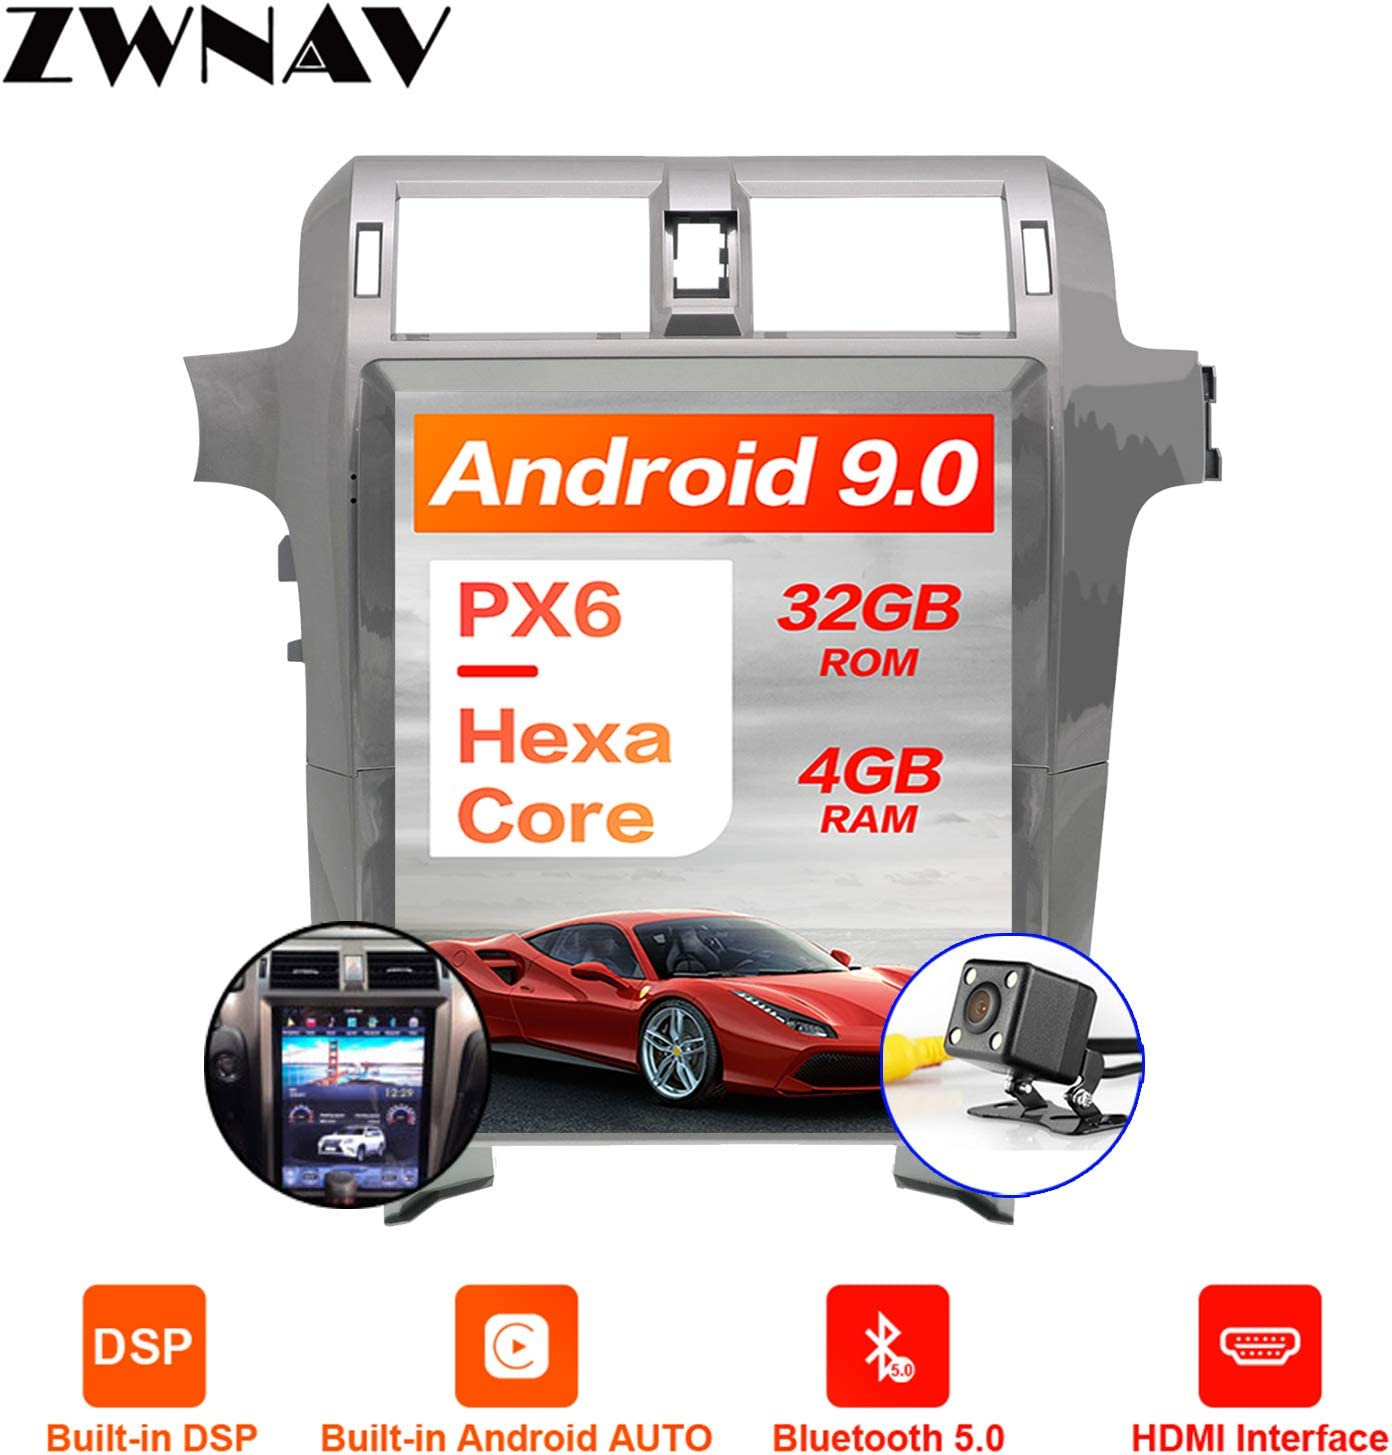 ZWNAV One din Android 9.0 Tesla Android Car Stereo for Lexus GX400 GX460 2010-2016, Car GPS Navigation Head Unit, in-Dash DSP, HDMI Output, Support Carplay, Android Auto, Bluetooth, WiFi, Fast Boot